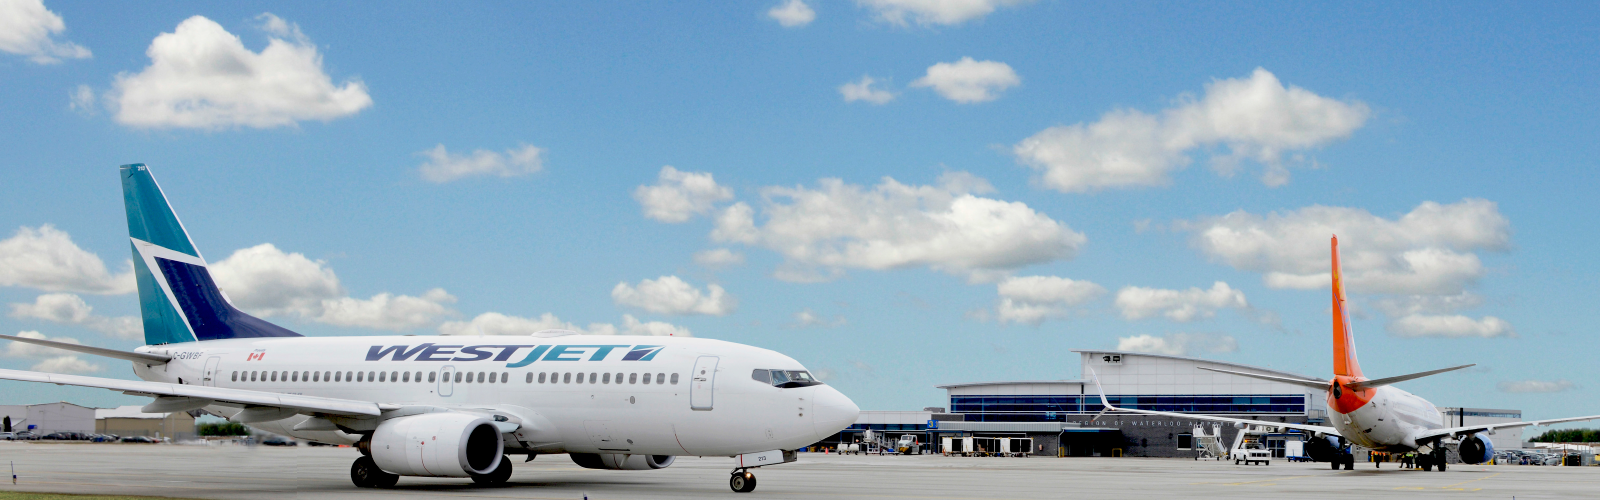 Picture of a WestJet Plane at the Region's airport